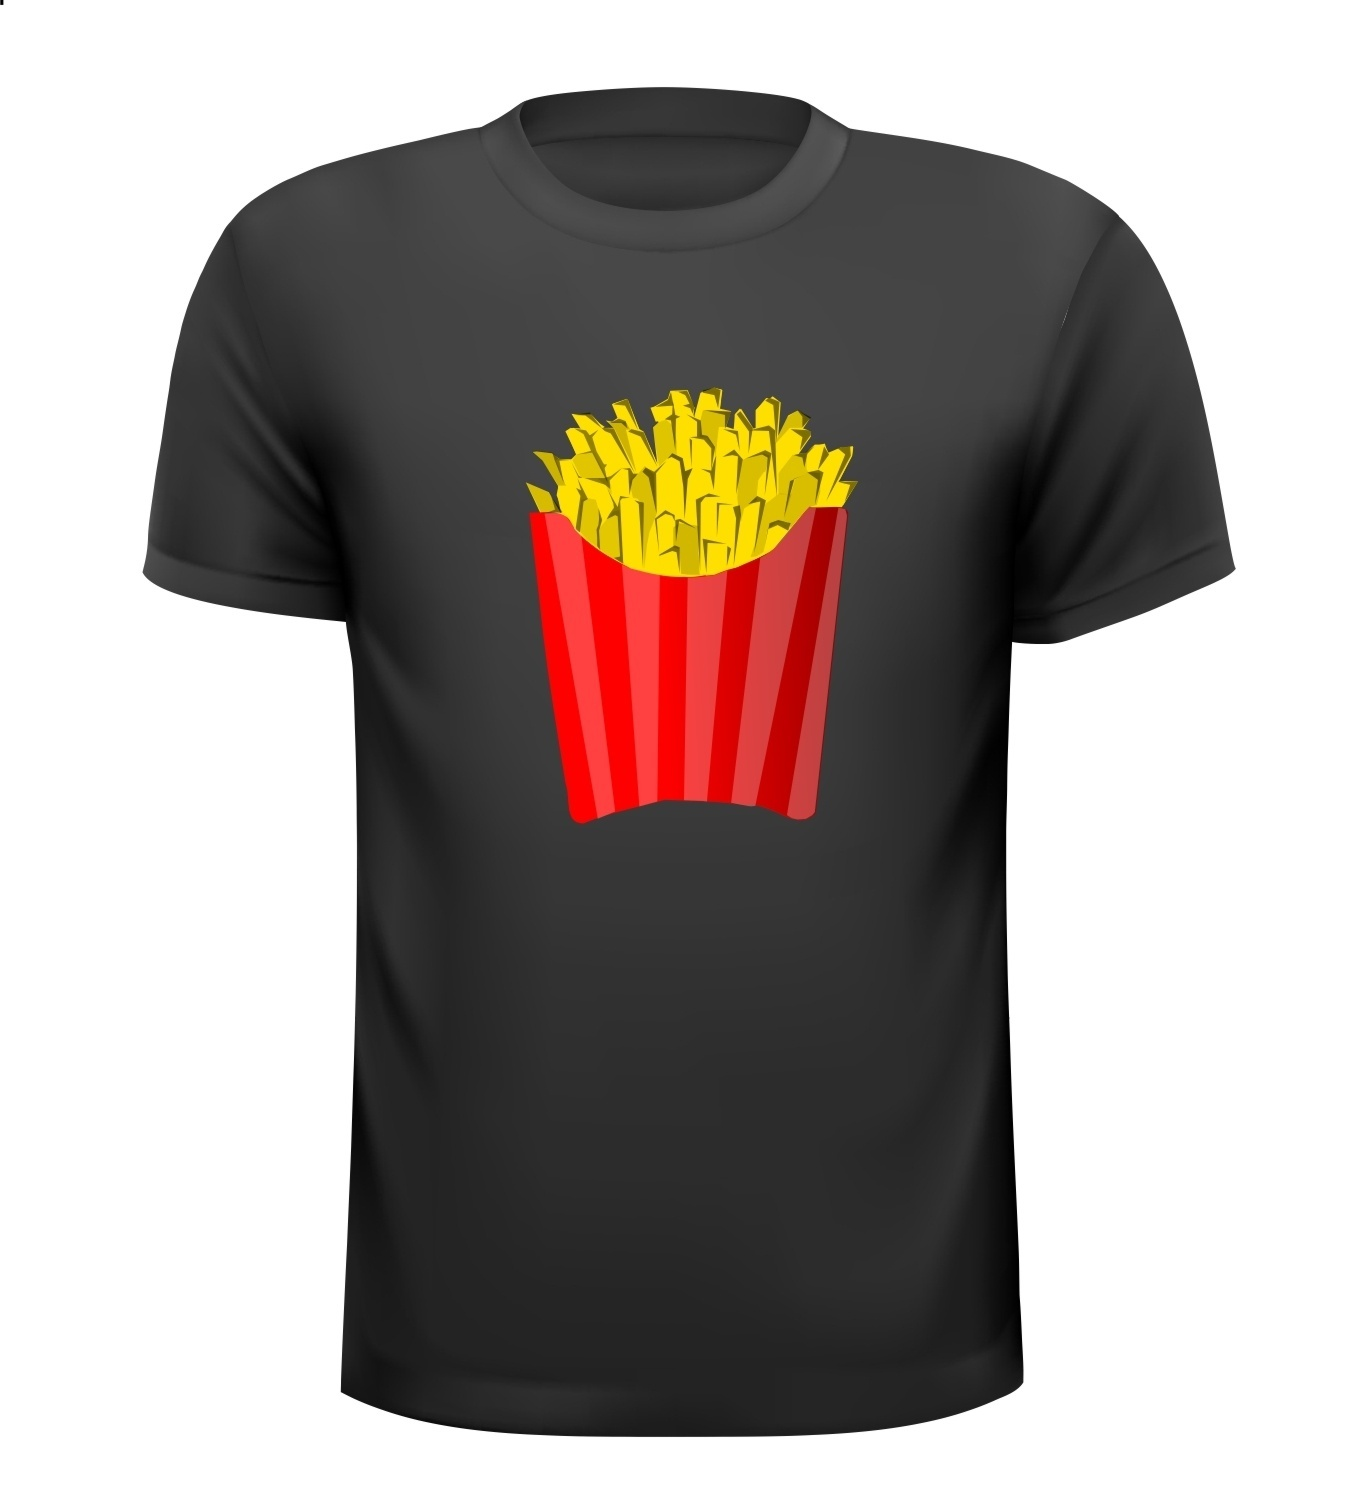 Fashion food friet shirt